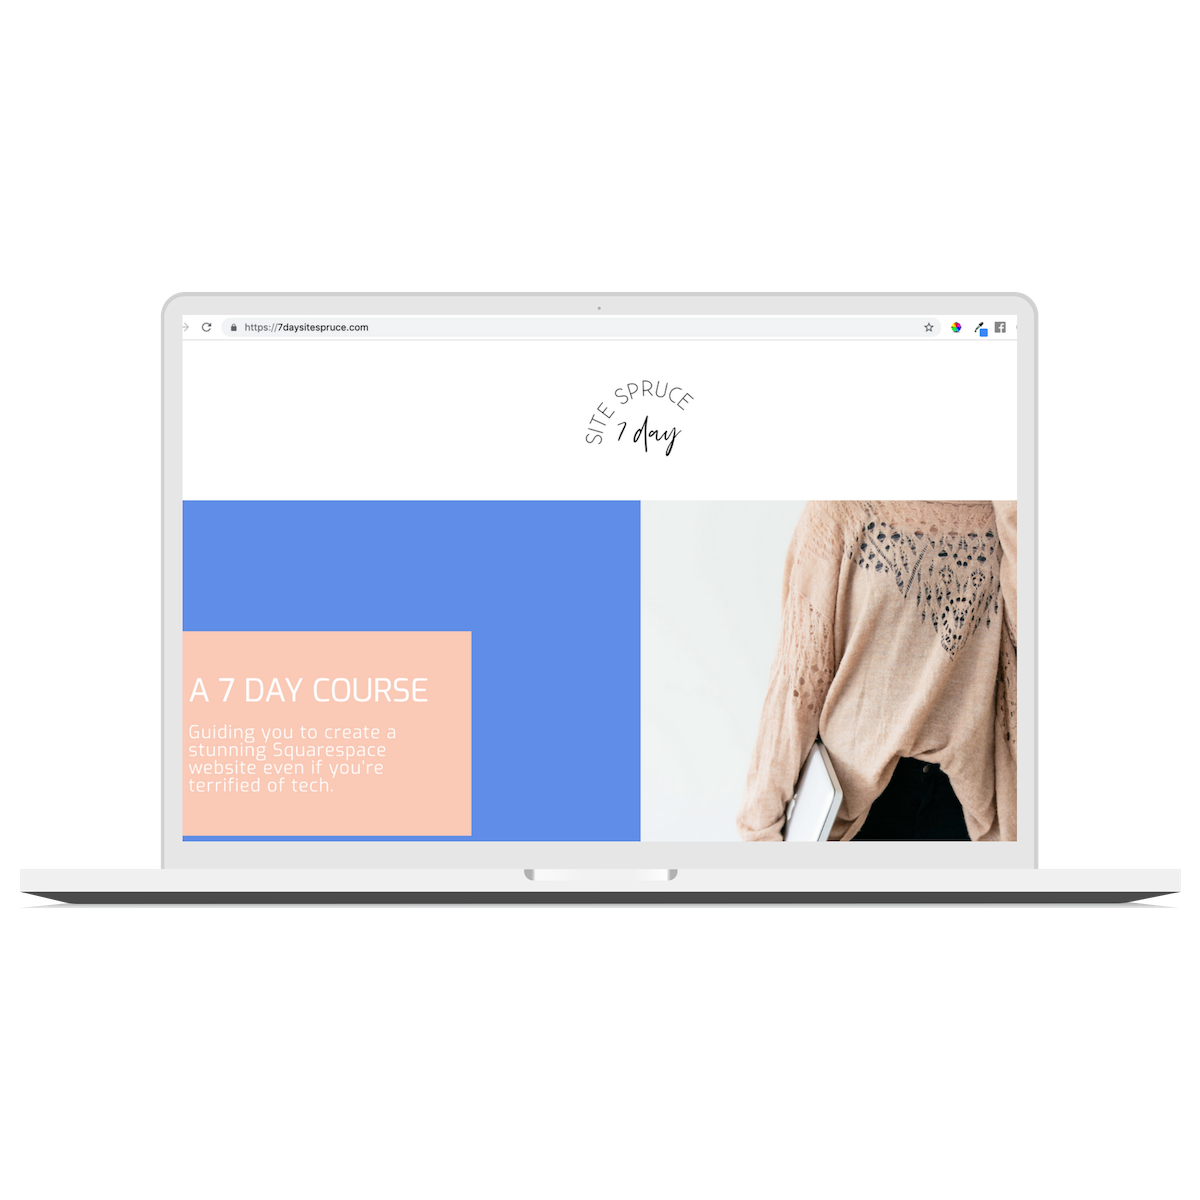 7 Day Site Spruce - The 7 DAY COURSEGuiding you to create a stunning Squarespace website even if you're terrified of tech.